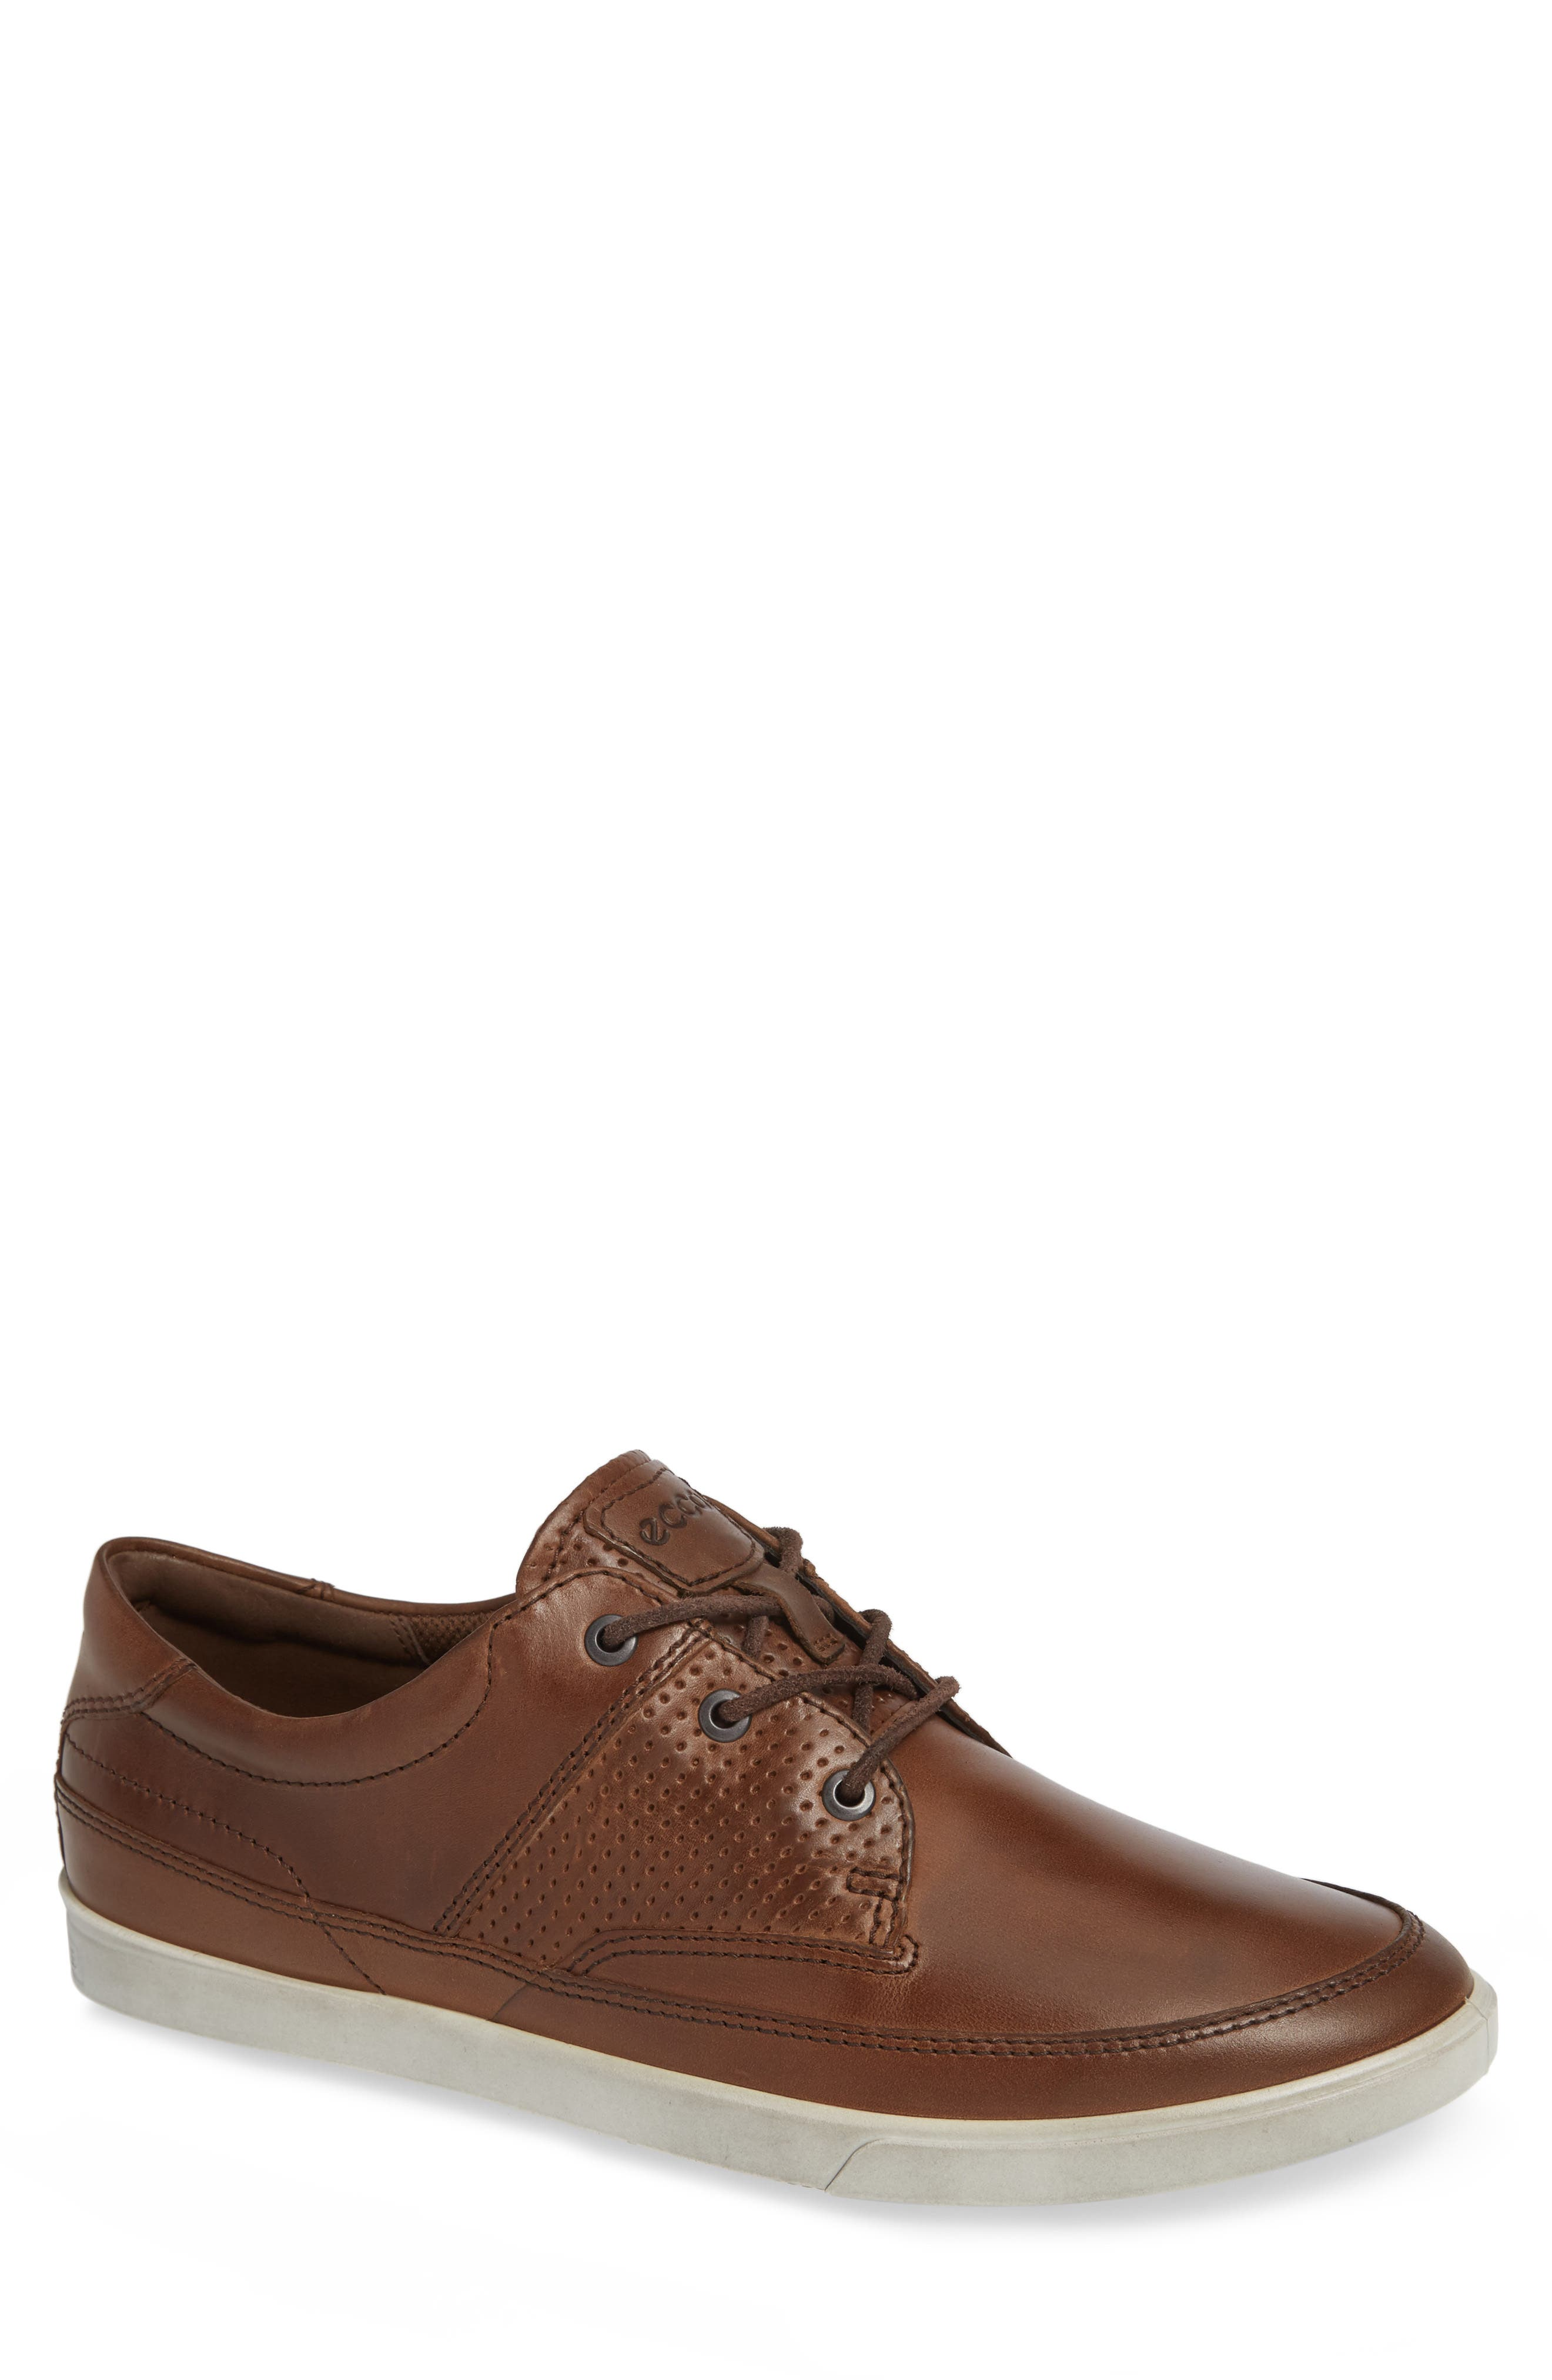 'Collin' Nautical Sneaker,                             Main thumbnail 1, color,                             COCOA BROWN LEATHER